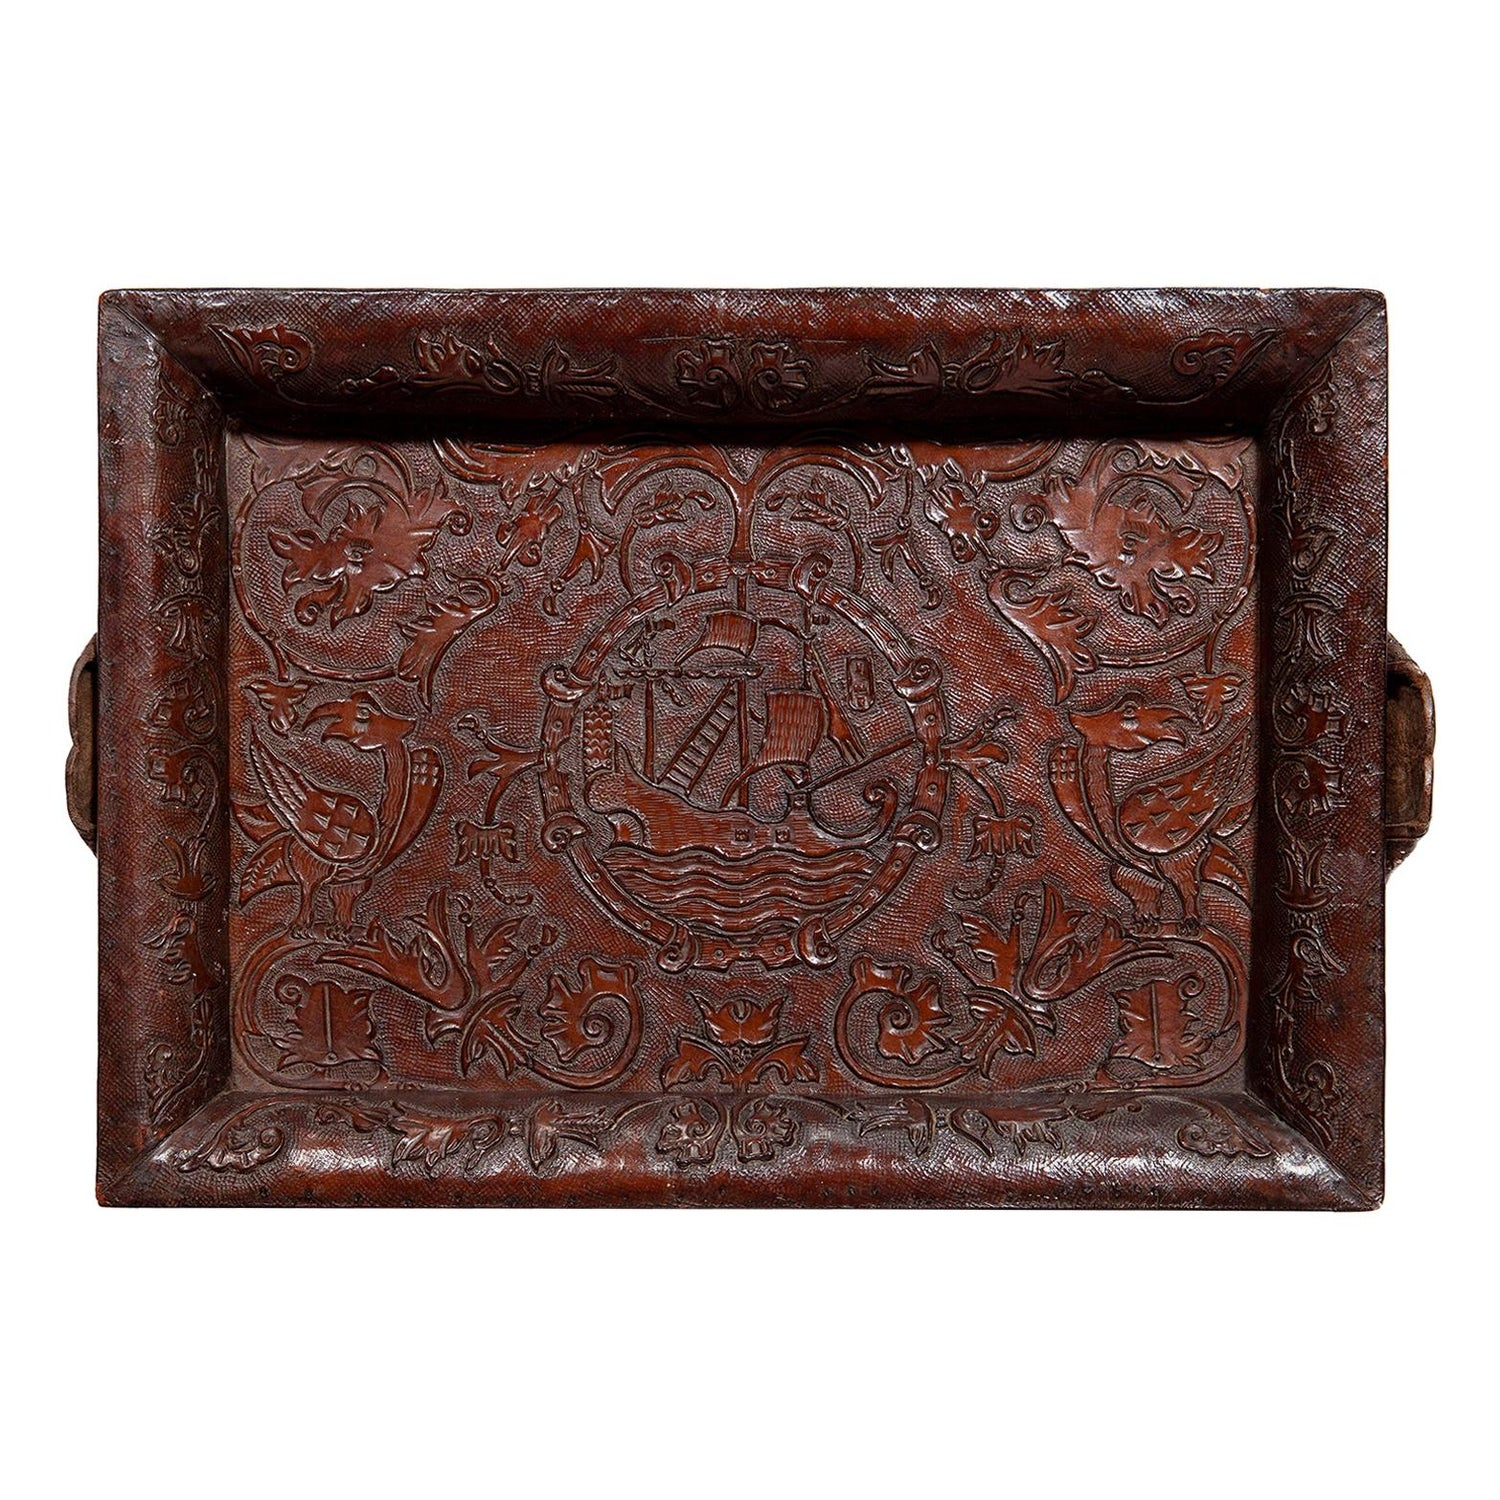 Tray Leather Embossed Nautical Design Galleon Tulip Mythical Bird Brown Baroque